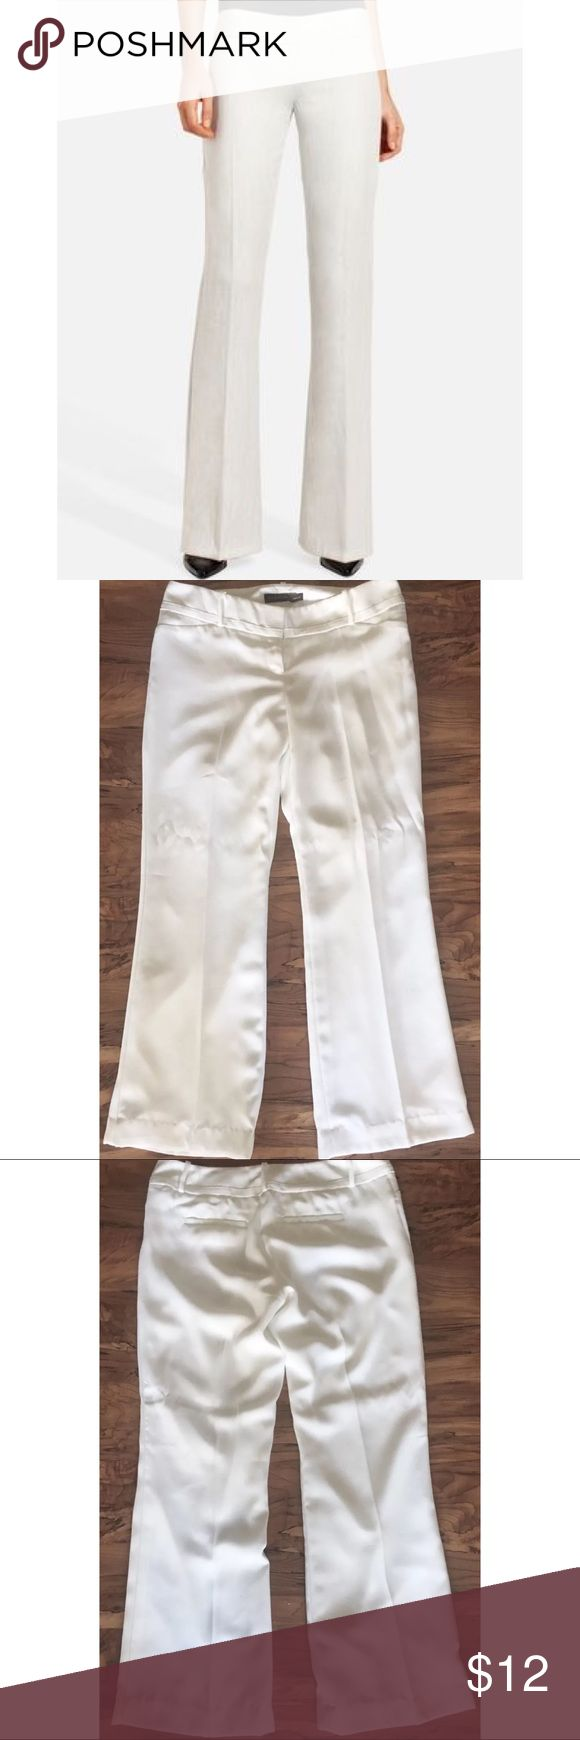 """The Limited Womens White Slacks Drew Fit Size 10 The Limited women's Pure white slacks drew fit size 10    Style # P74T5321   Measurements-  Waist: 36""""  Rise: 9""""  Inseam: 31.5""""    The pants are in mint condition! The knees just need ironed!     Customer service is my #1 priority! I strive to not only meet, but to exceed the standard. If for any reason you are unhappy with your order, I will make it right!     Thank you for supporting small business! The Limited Pants Trousers"""